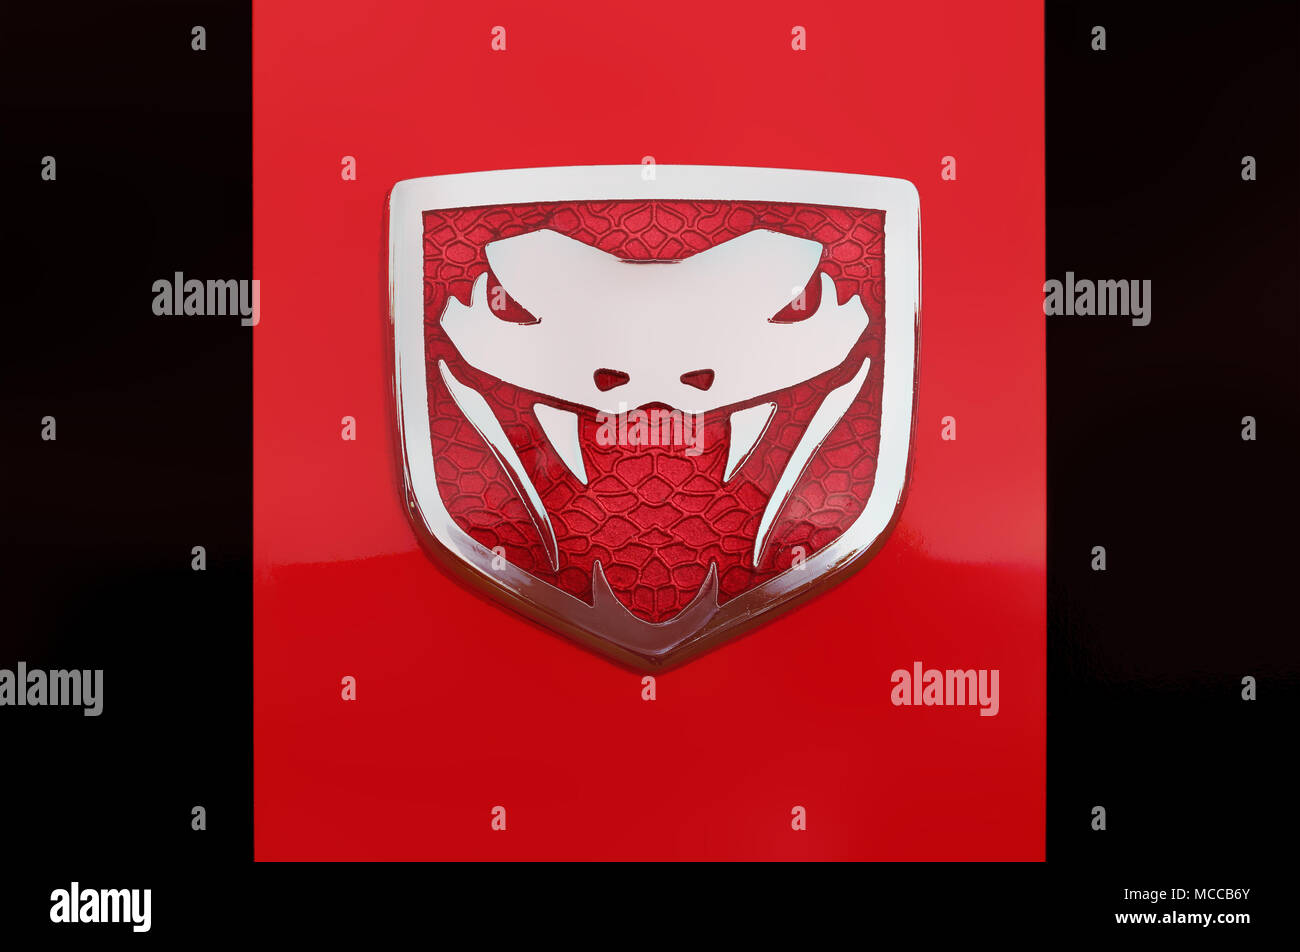 Dodge Viper Logo Stock Photos Dodge Viper Logo Stock Images Alamy